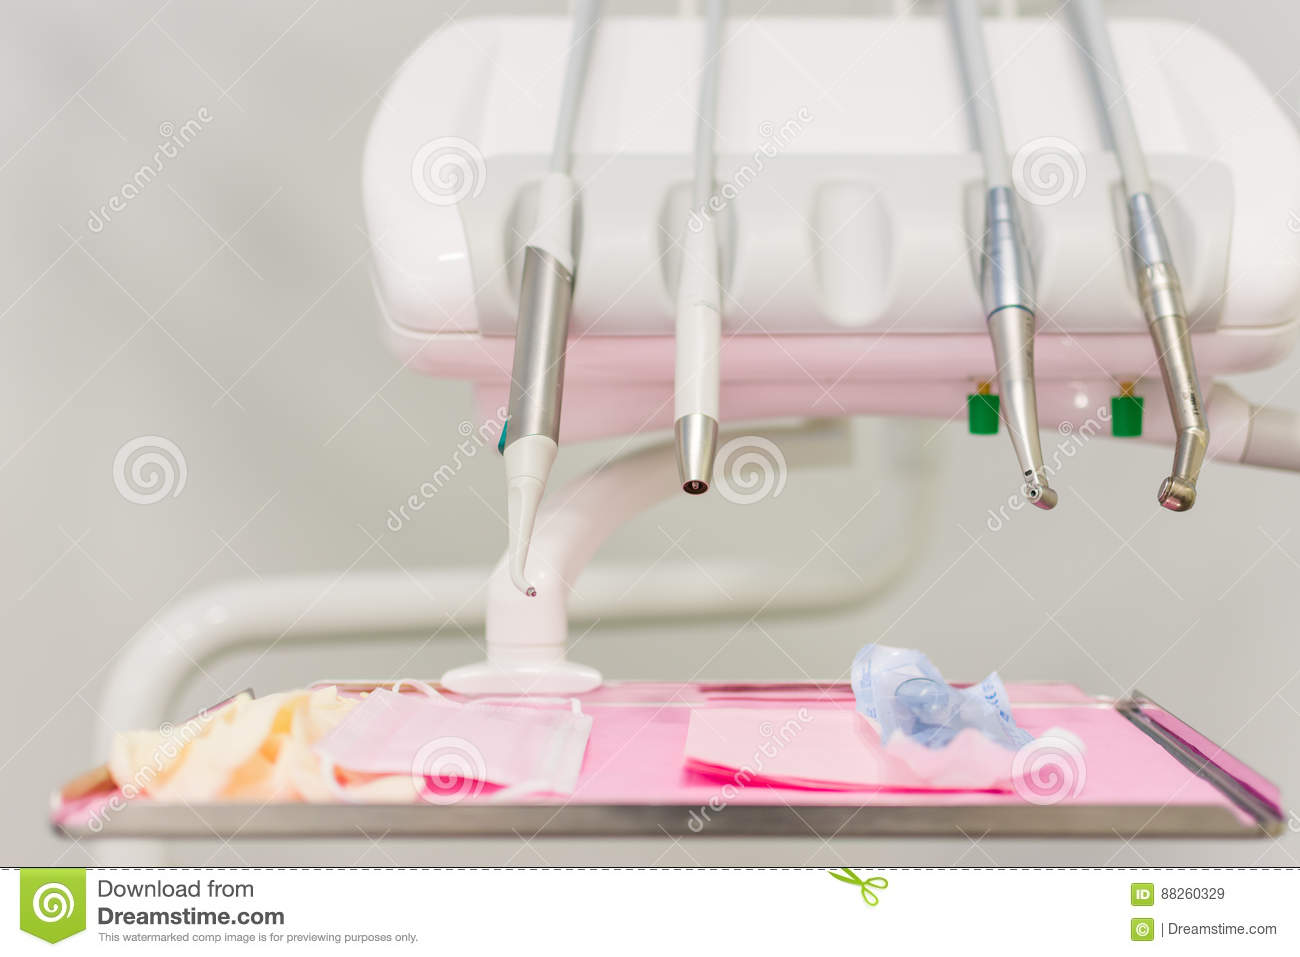 Dental Chair Instruments And Drills Stock Image - Image of polisher